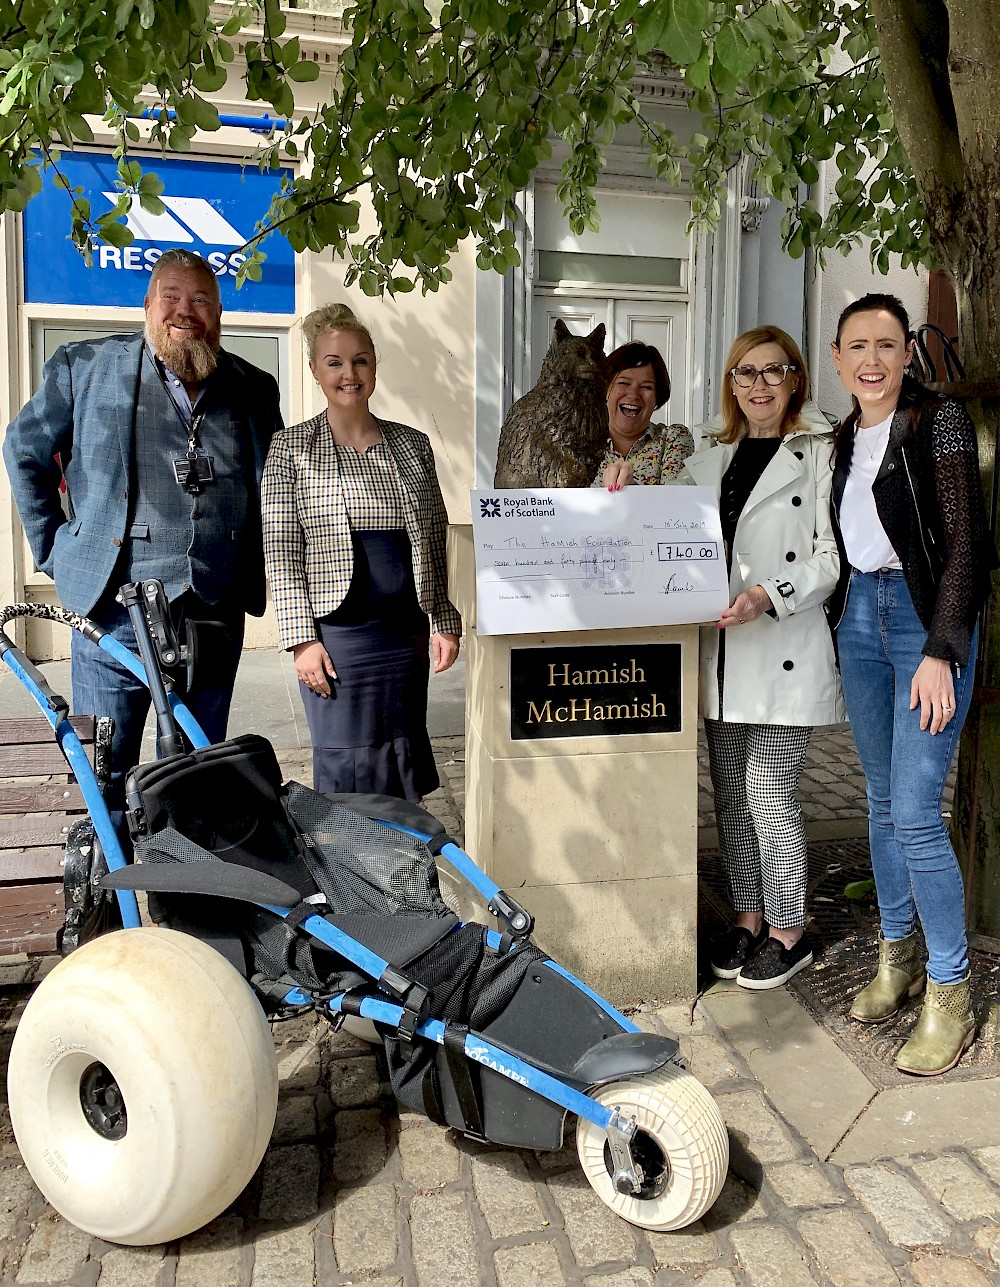 Handover over recent fundraising cheque to The Hamish Foundation. Pictured from left to right - Steve Lowrie McKay from Eden Mill, Verity Power of Hotel du Vin, Debbie MacCallum, Linda-Anne Beaulier and Jessica Spink of Tailend Restaurant